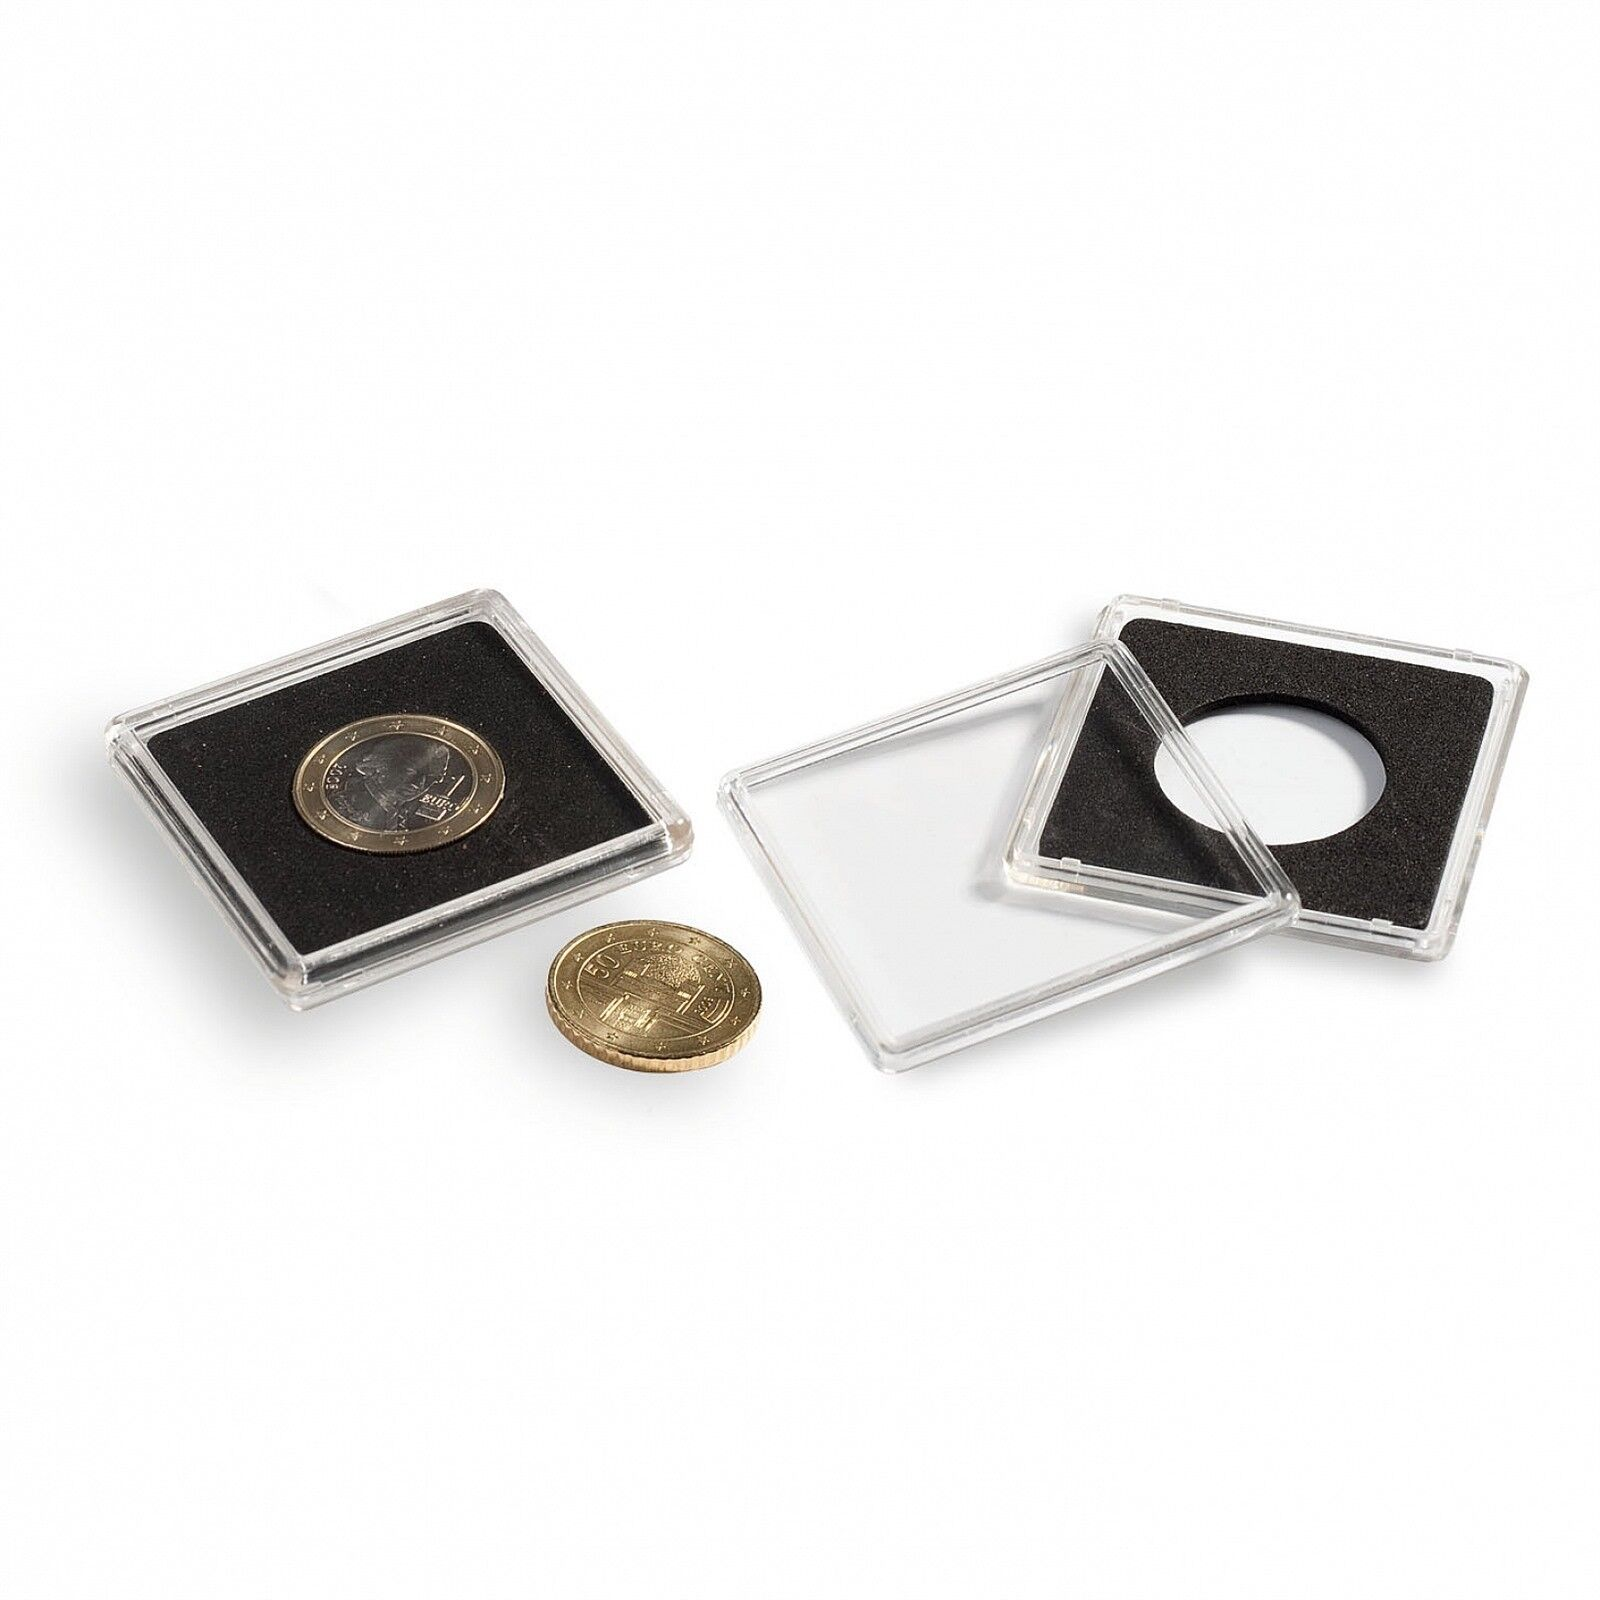 1 Only Lighthouse Quadrum 31mm Square Coin Capsule